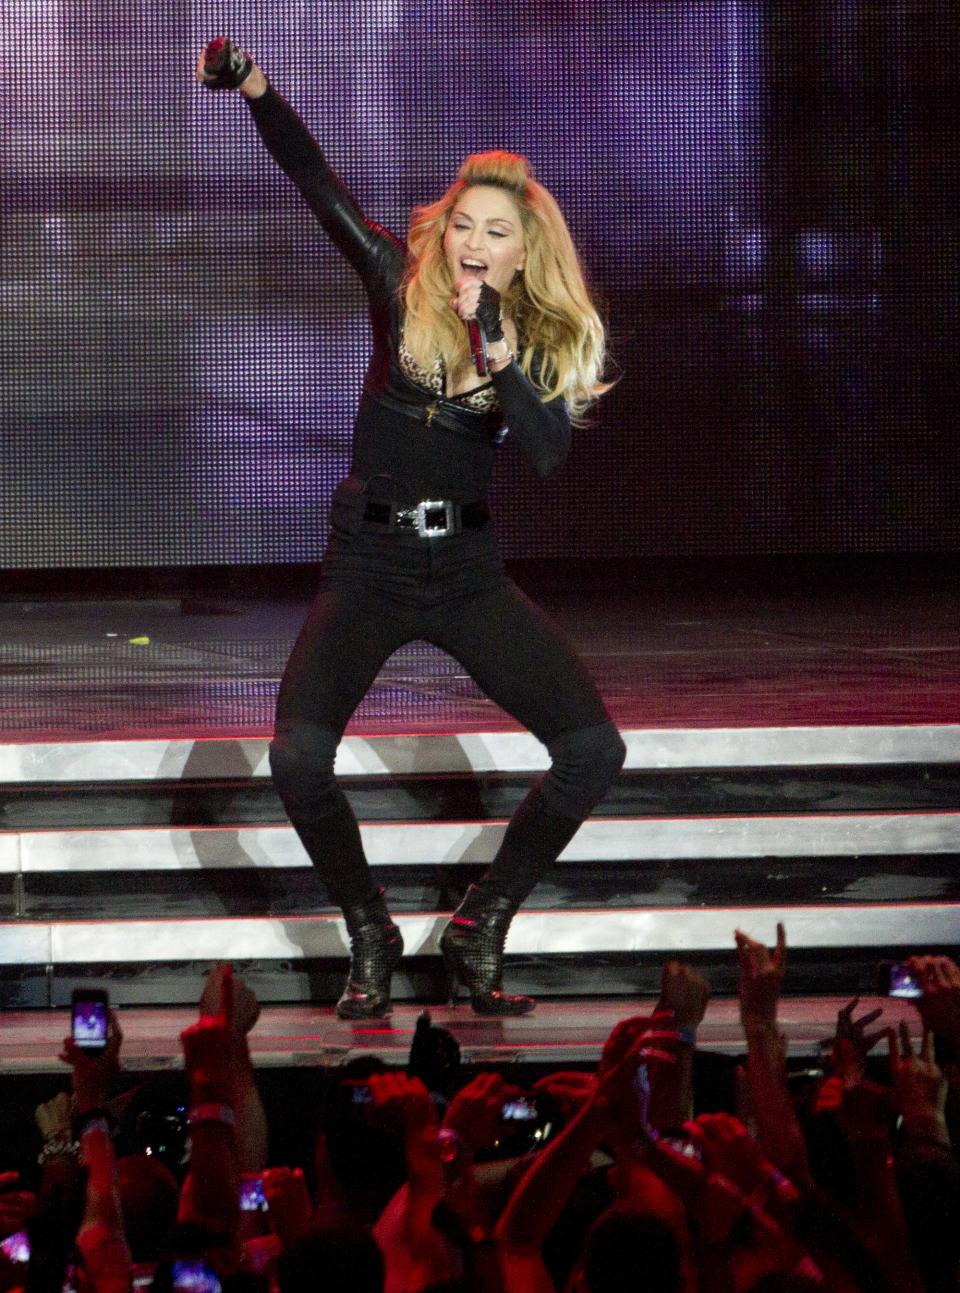 U.S pop icon Madonna at the Ramat Gan stadium nearTel Aviv, Israel, Thursday, May 31, 2012. Pop music star Madonna is kicking off her new world tour in front of tens of thousands of ecstatic fans in Israel. (AP Photo/Ariel Schalit)